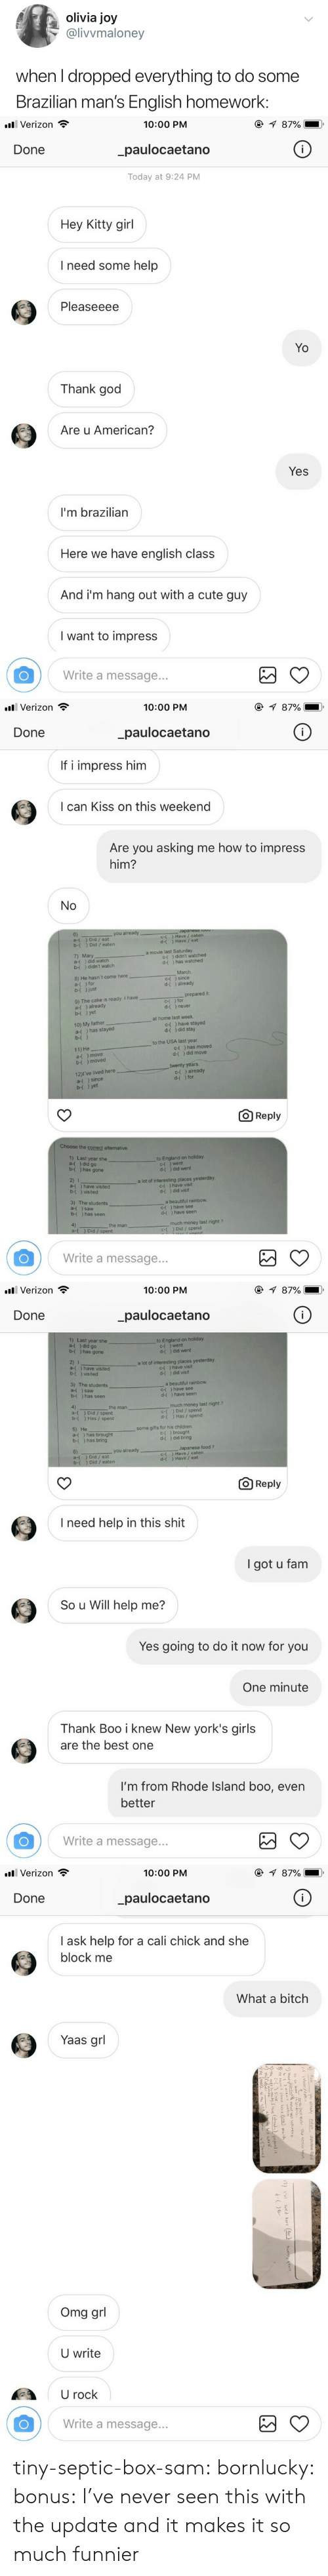 English Class: olivia joy  @livvmaloney  when I dropped everything to do some  Brazilian man's English homework:   all Verizon  10:00 PM  _paulocaetano  Today at 9:24 PM  Done  Hey Kitty girl  I need some help  Pleaseeee  Yo  Thank god  Are u American?  Yes  I'm brazilian  Here we have english class  And i'm hang out with a cute guy  I want to impress  Write a message...   . Verizon  10:00 PM  Done  paulocaetano  If i impress him  I can Kiss on this weekend  Are you asking me how to impress  him?  6)  a-( ) Did / eat  b-( ) Did / eaten  you  c-( ) Have /eaten  d-( ) Have / eat  a movie last Saturday  7) Mary  a-( ) did watch  b-( ) didn't watch  C-(  d-(  ) didn't watched  ) has watched  March  8) He hasn't come here  d-( ) already  b-( )just  9) The cake is ready I have  a-( ) already  b-( ) yet  prepared it  { ) for  d-( ) never  at home last week  10) My father  a-( ) has stayed  have stayed  d-(  ) did stay  to the USA last year  11) He  a-( ) move  b-( ) moved  C-( ) has moved  d-( ) did move  twenty years.  12)r've lived here  a-(since  b-() yet  c-( ) already  d-( ) for  O Reply  Choose the correct alternative  1) Last year she  a-( )did go  b-( ) has gone  to England on holiday  c-( ) went  d-( ) did went  2) I  a-( ) have visited  b-( ) visited  a lot of interesting places yesterday  C-( ) have visit  d-( ) did visit  3) The students  a-( ) saw  b-( ) has seen  a beautiful rainbow  c-( ) have see  d-( ) have seen  4)  the man  much money last night ?  c-() Did / spend  Write a message...   . Verizon  10:00 PM  Done  paulocaetano  1) Last year she  a-() did go  b-( ) has gone  to England on holiday  c-( ) went  d-( ) did went  2) 1  a-( ) have visited  b-( ) visited  a lot of interesting places yesterday  c-《 ) have visit  d-( ) did visit  3) The students  a-( ) saw  b-( ) has seen  a beautiful rainbow  c-f ) have see  d-( ) have seen  much money last night?  ) Did / spend  ) Has / spend  the man  a-( ) Did / spent  b-( ) Has / spent  c-(  d-(  some gifts fo